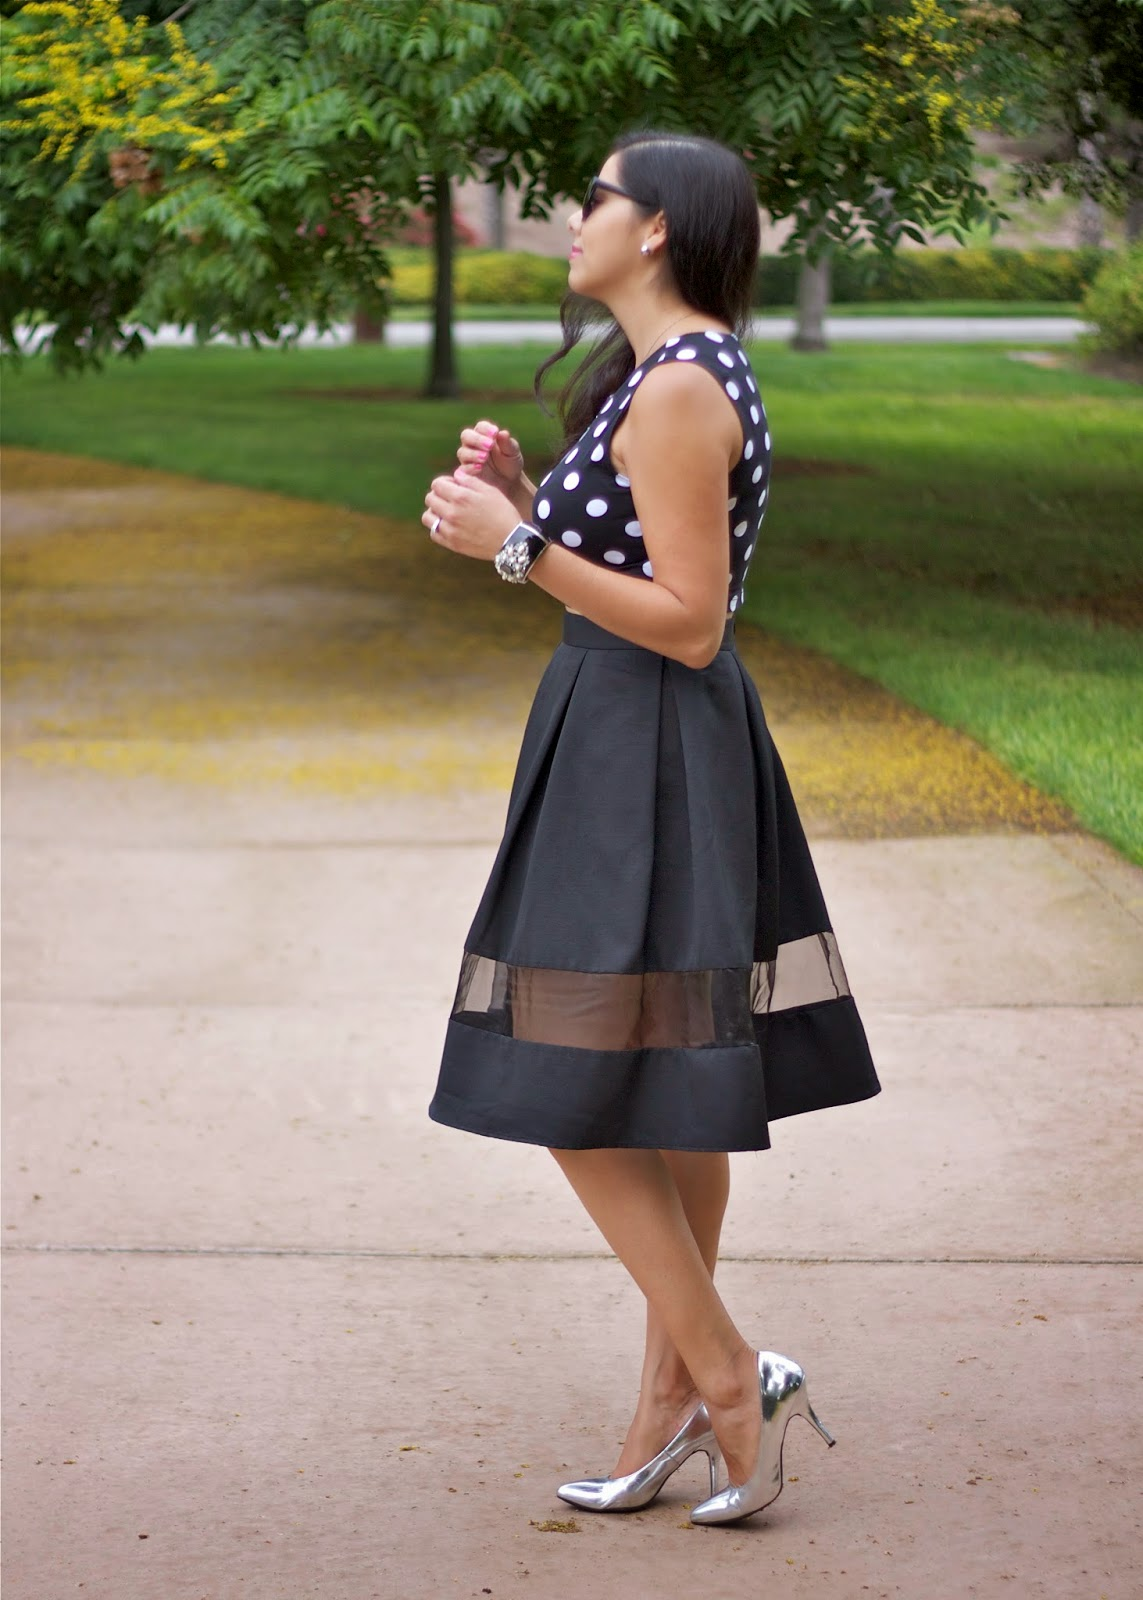 how to wear a crop top and a midi skirt, how to wear a crop with a midi skirt, blogger shows you how to wear a crop and midi, polka dots elegantly, how to wear polka dots in an elegant way